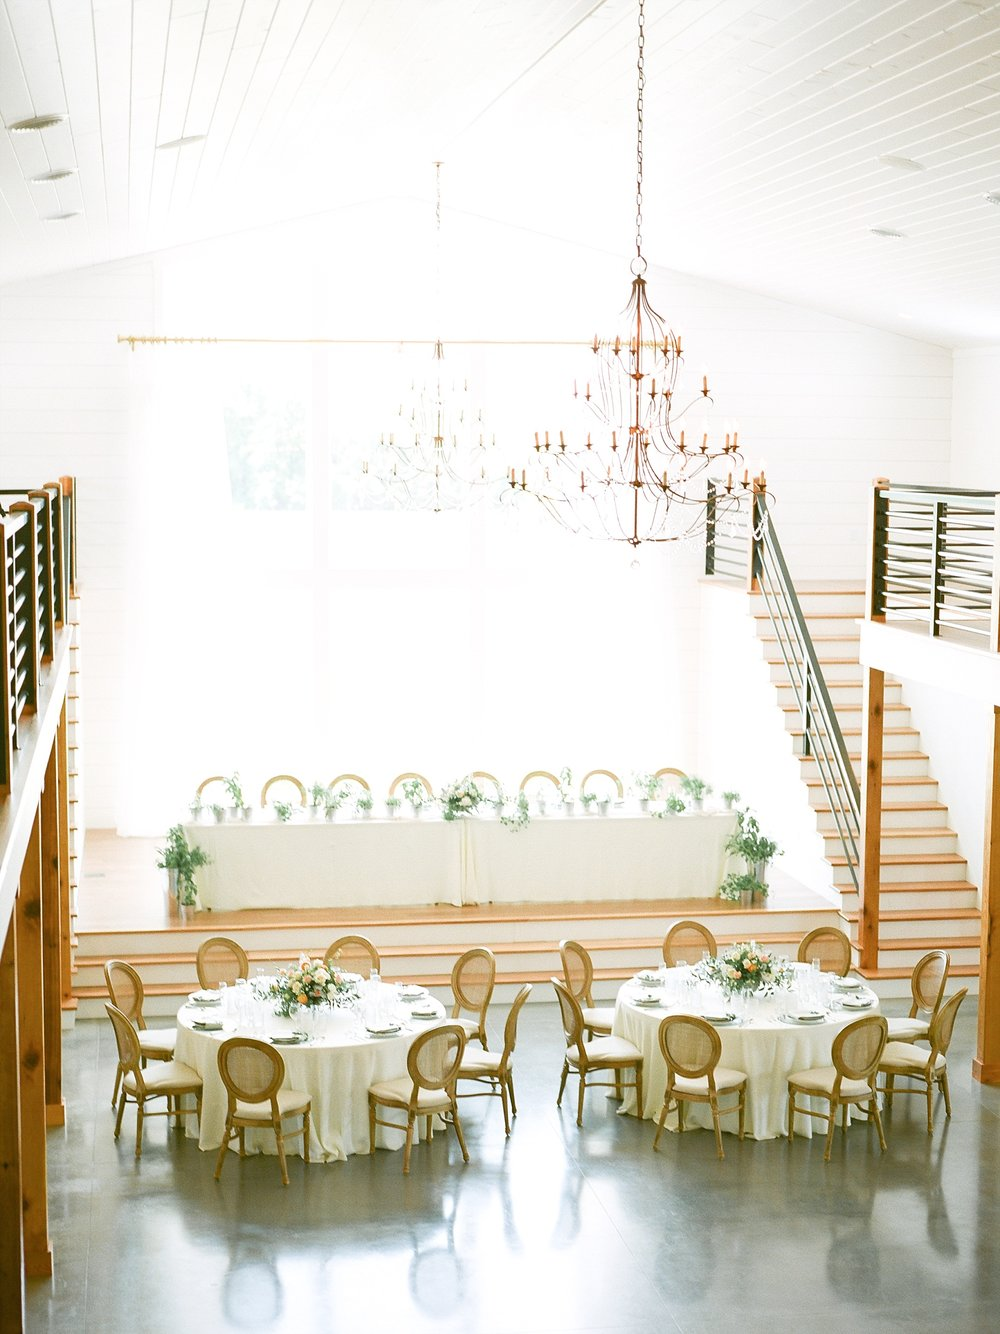 Textural Organic Wedding in All White Venue by Kelsi Kliethermes Wedding Photographer - Missouri, Midwest, and Destinations_0093.jpg